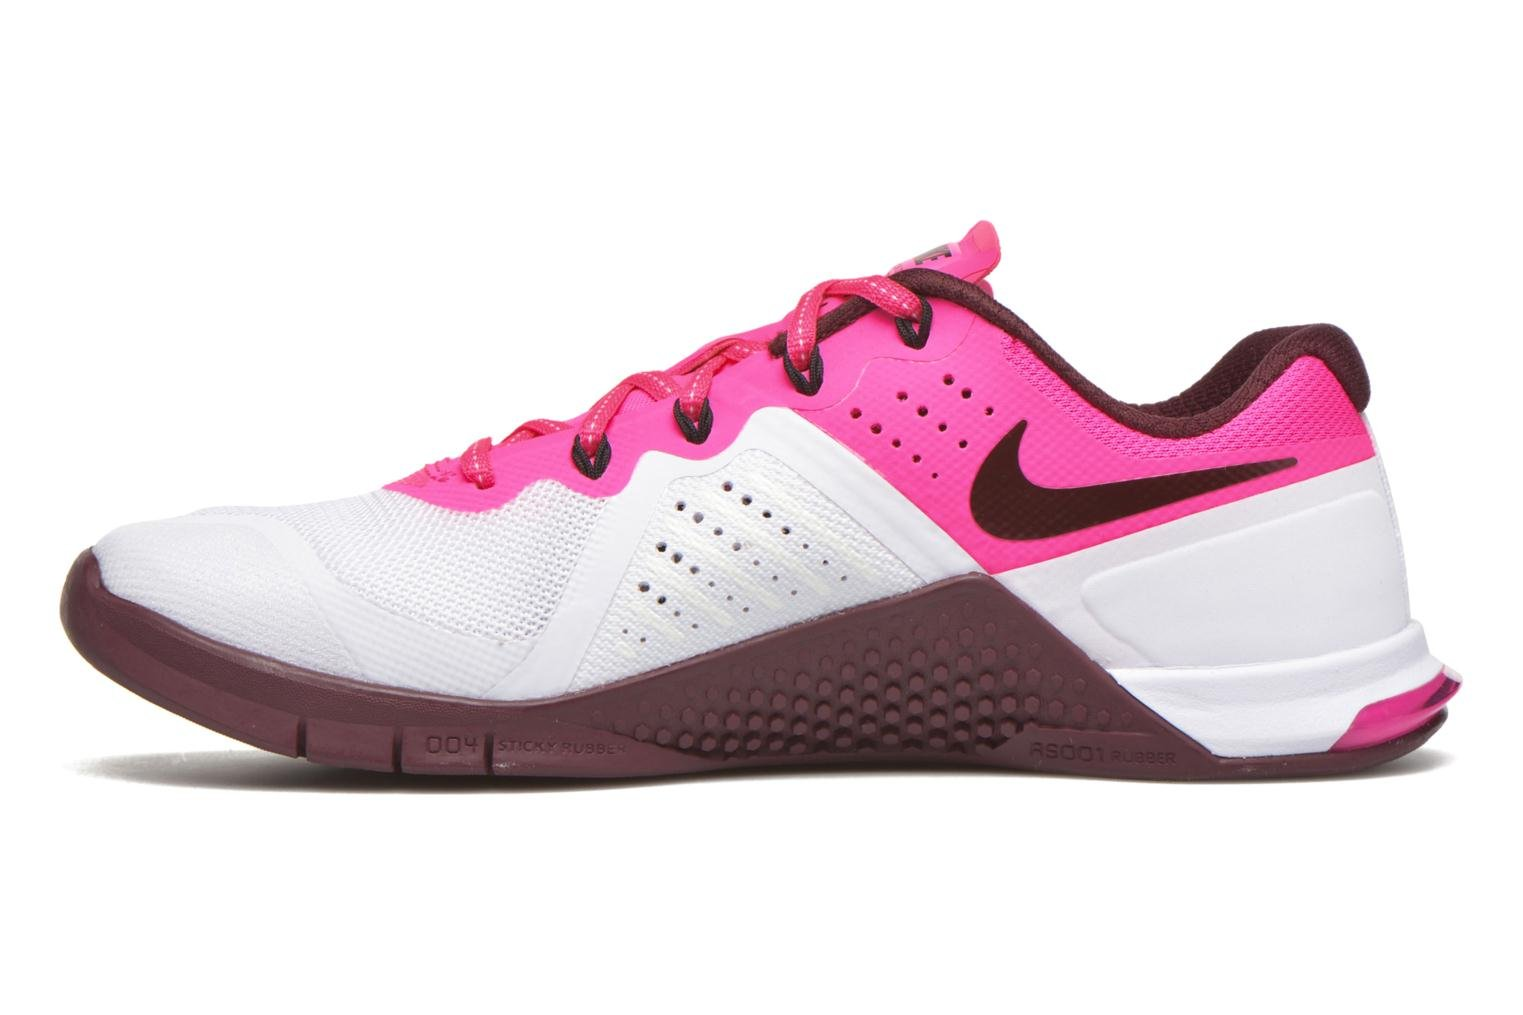 Wmns Nike Metcon 2 White/Nght Maroon-Pnk Blst-Blk